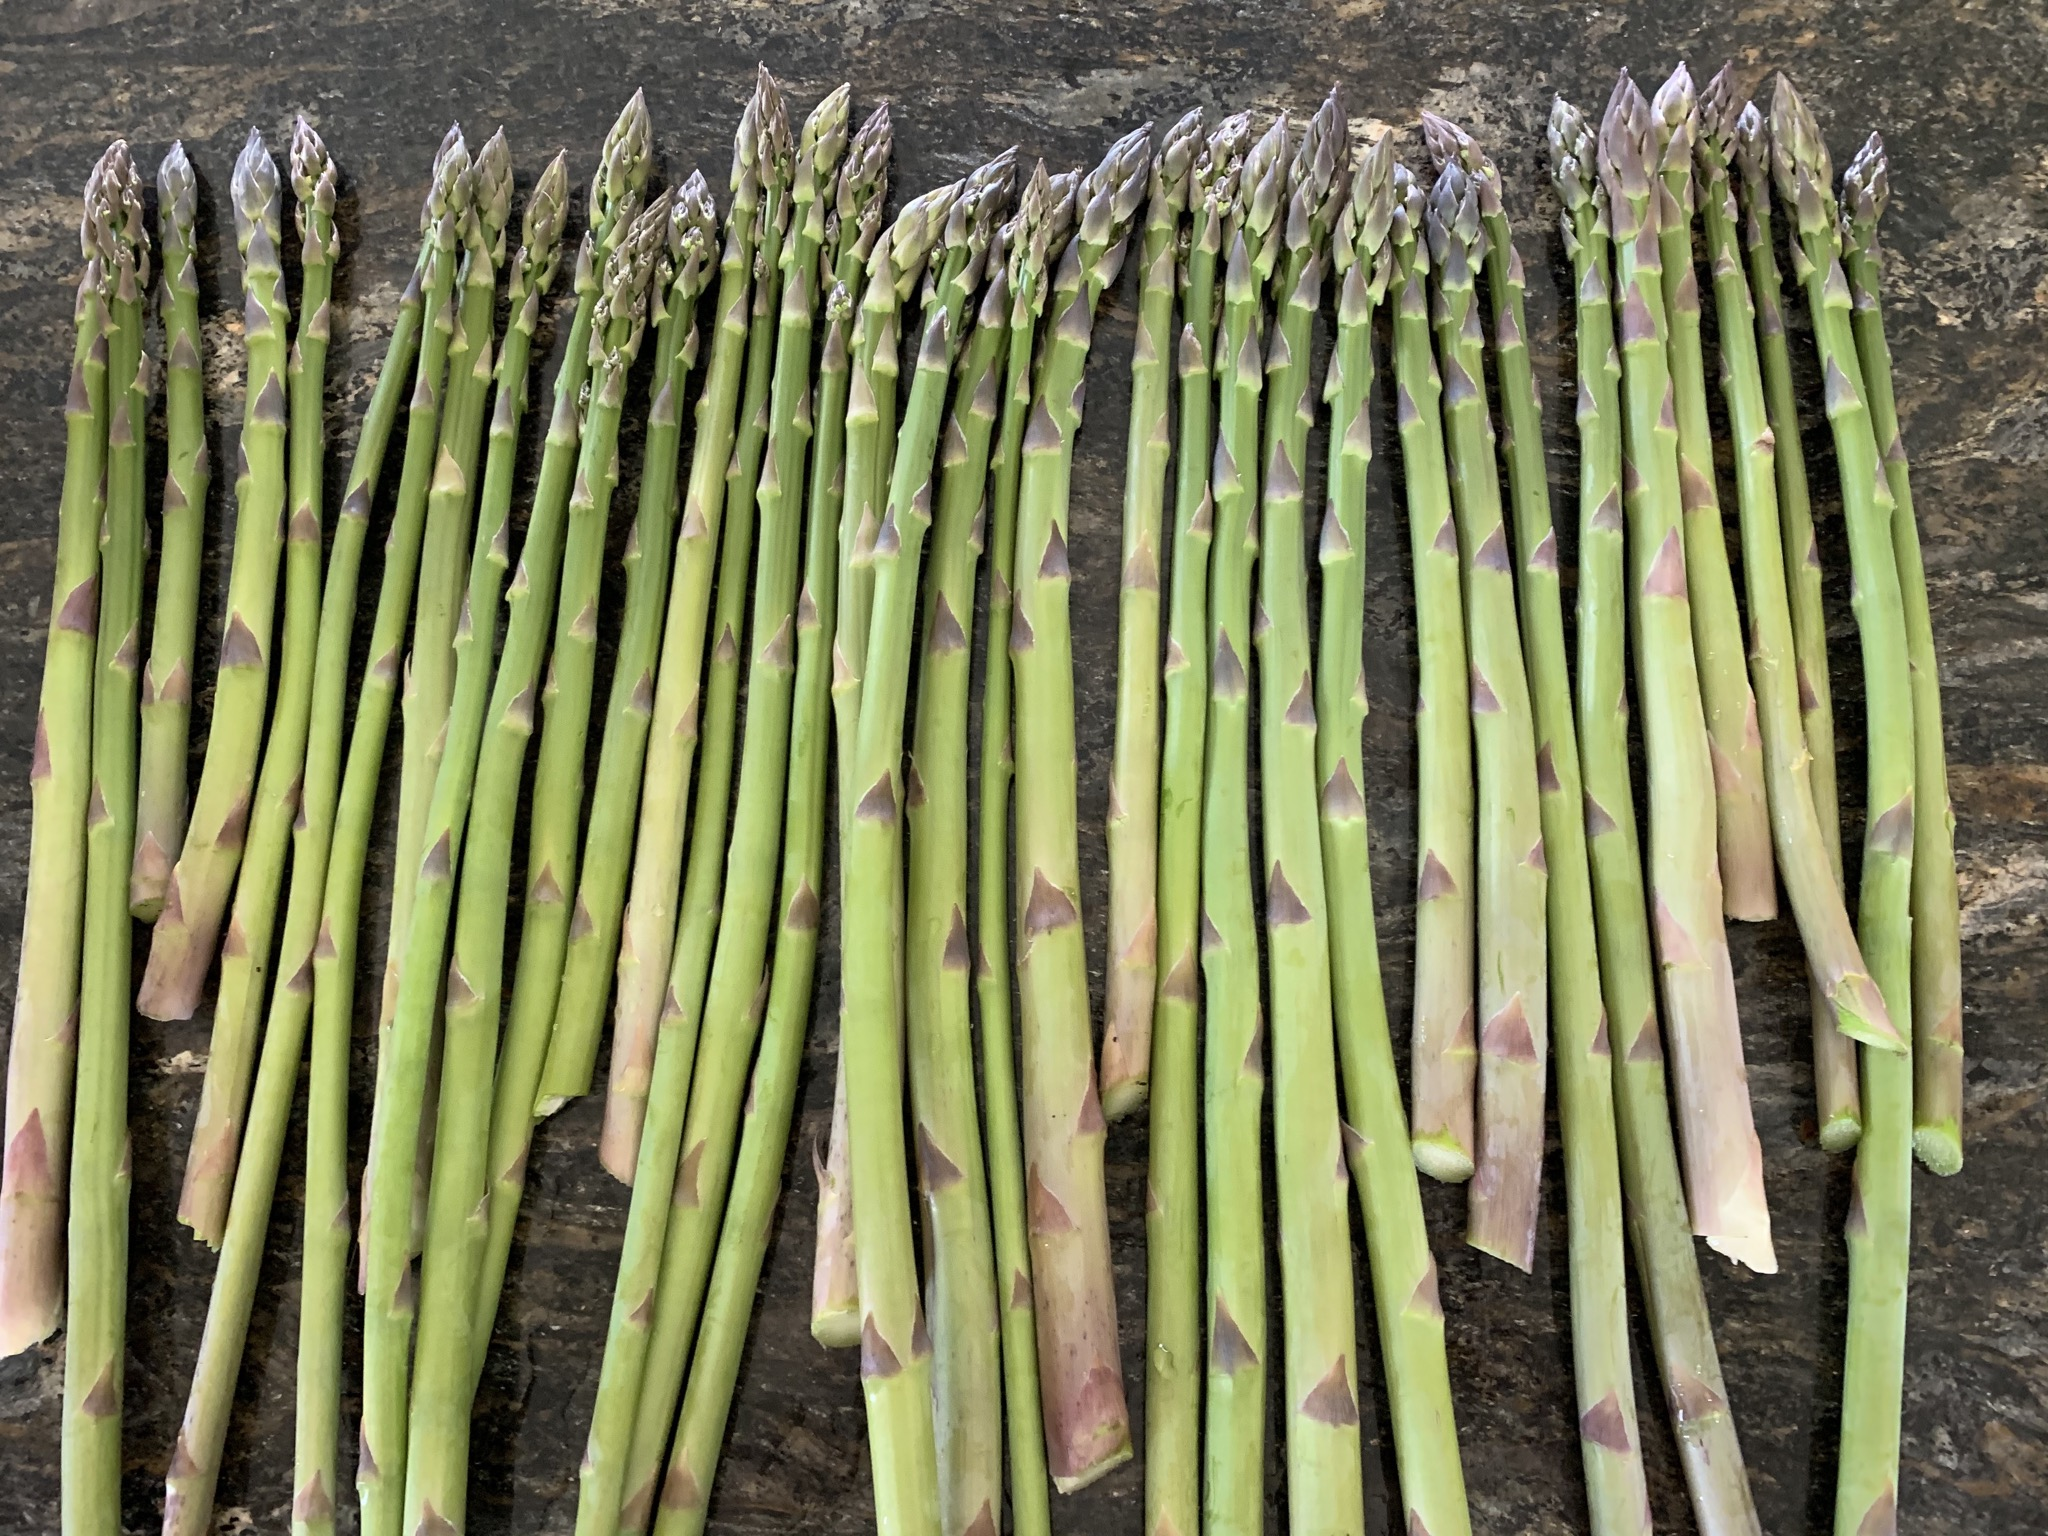 B7DBFE57 D023 442F 83EF 03ADC1A64CC0 How to double or triple your asparagus yield